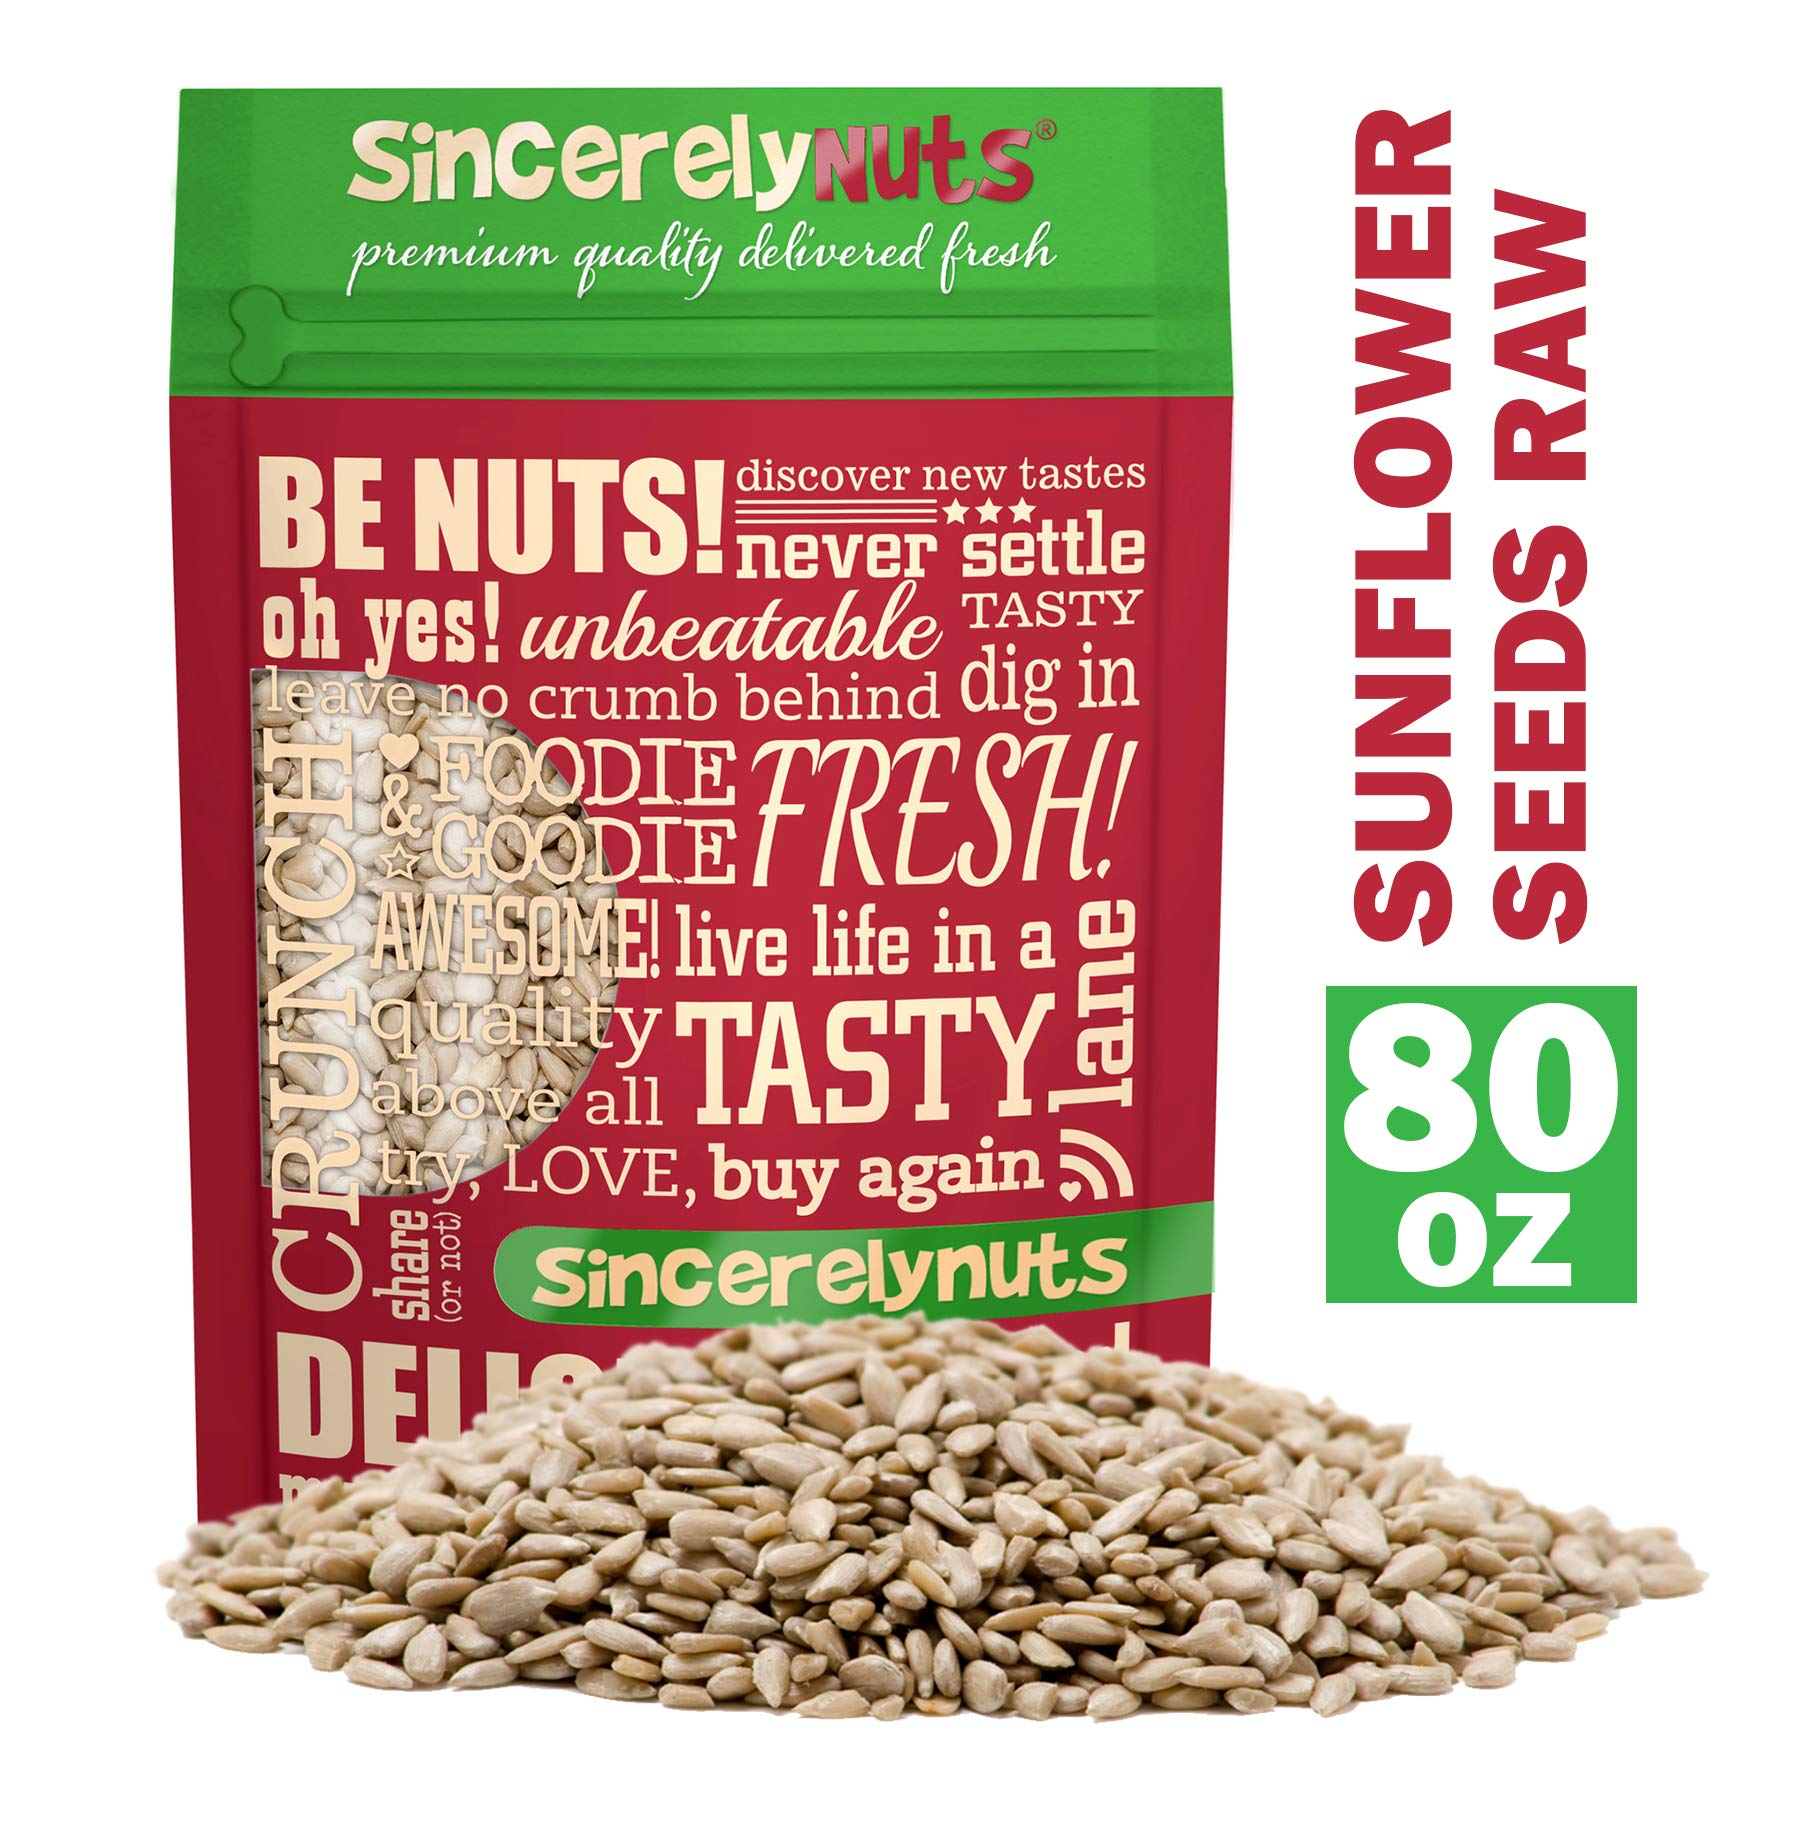 Sincerely Nuts Sunflower Seed Kernels Raw (No Shell) (5lb bag)   Delicious Antioxidant Rich Snack   Source of Protein, Fiber, Essential Vitamins & Minerals   Vegan and Gluten Free